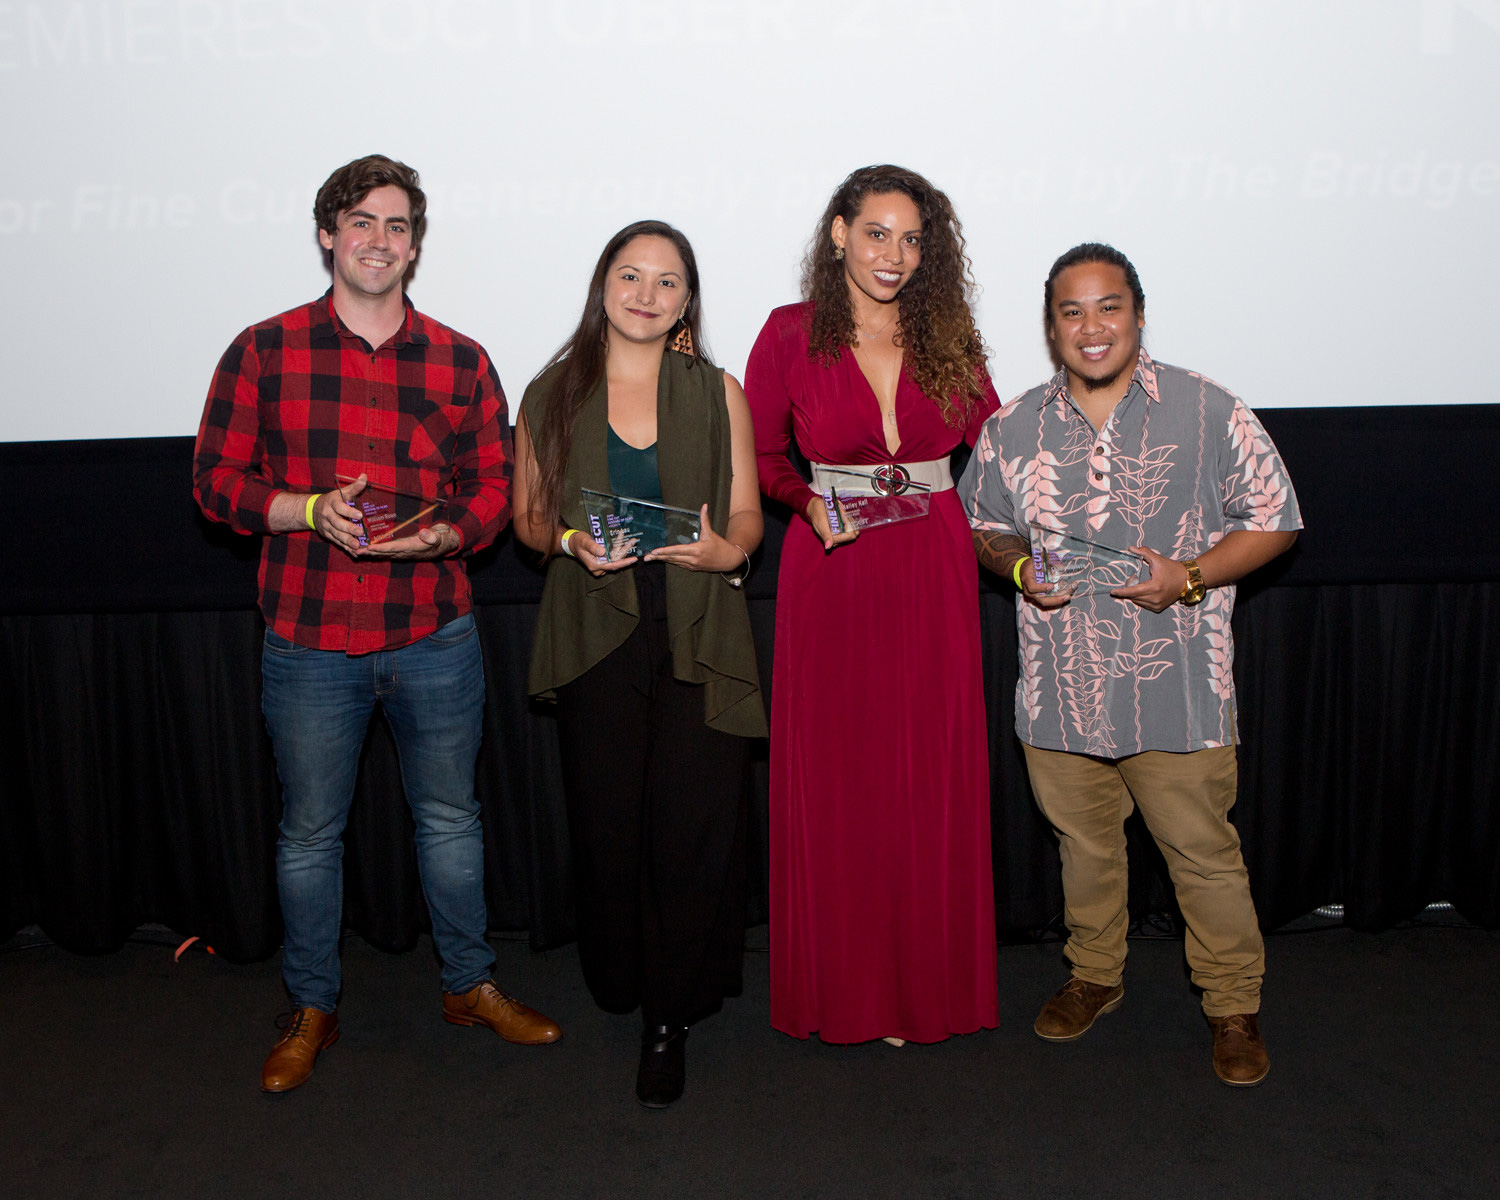 UCLA student William Rowe, Chapman University's Erin Lau, University of Southern California (USC) film school student Kelley Kali and USC's Shaun Dikilato accept their finalist awards at KCET's FINE CUT Festival of Films at the Landmark Theatre on Septemb